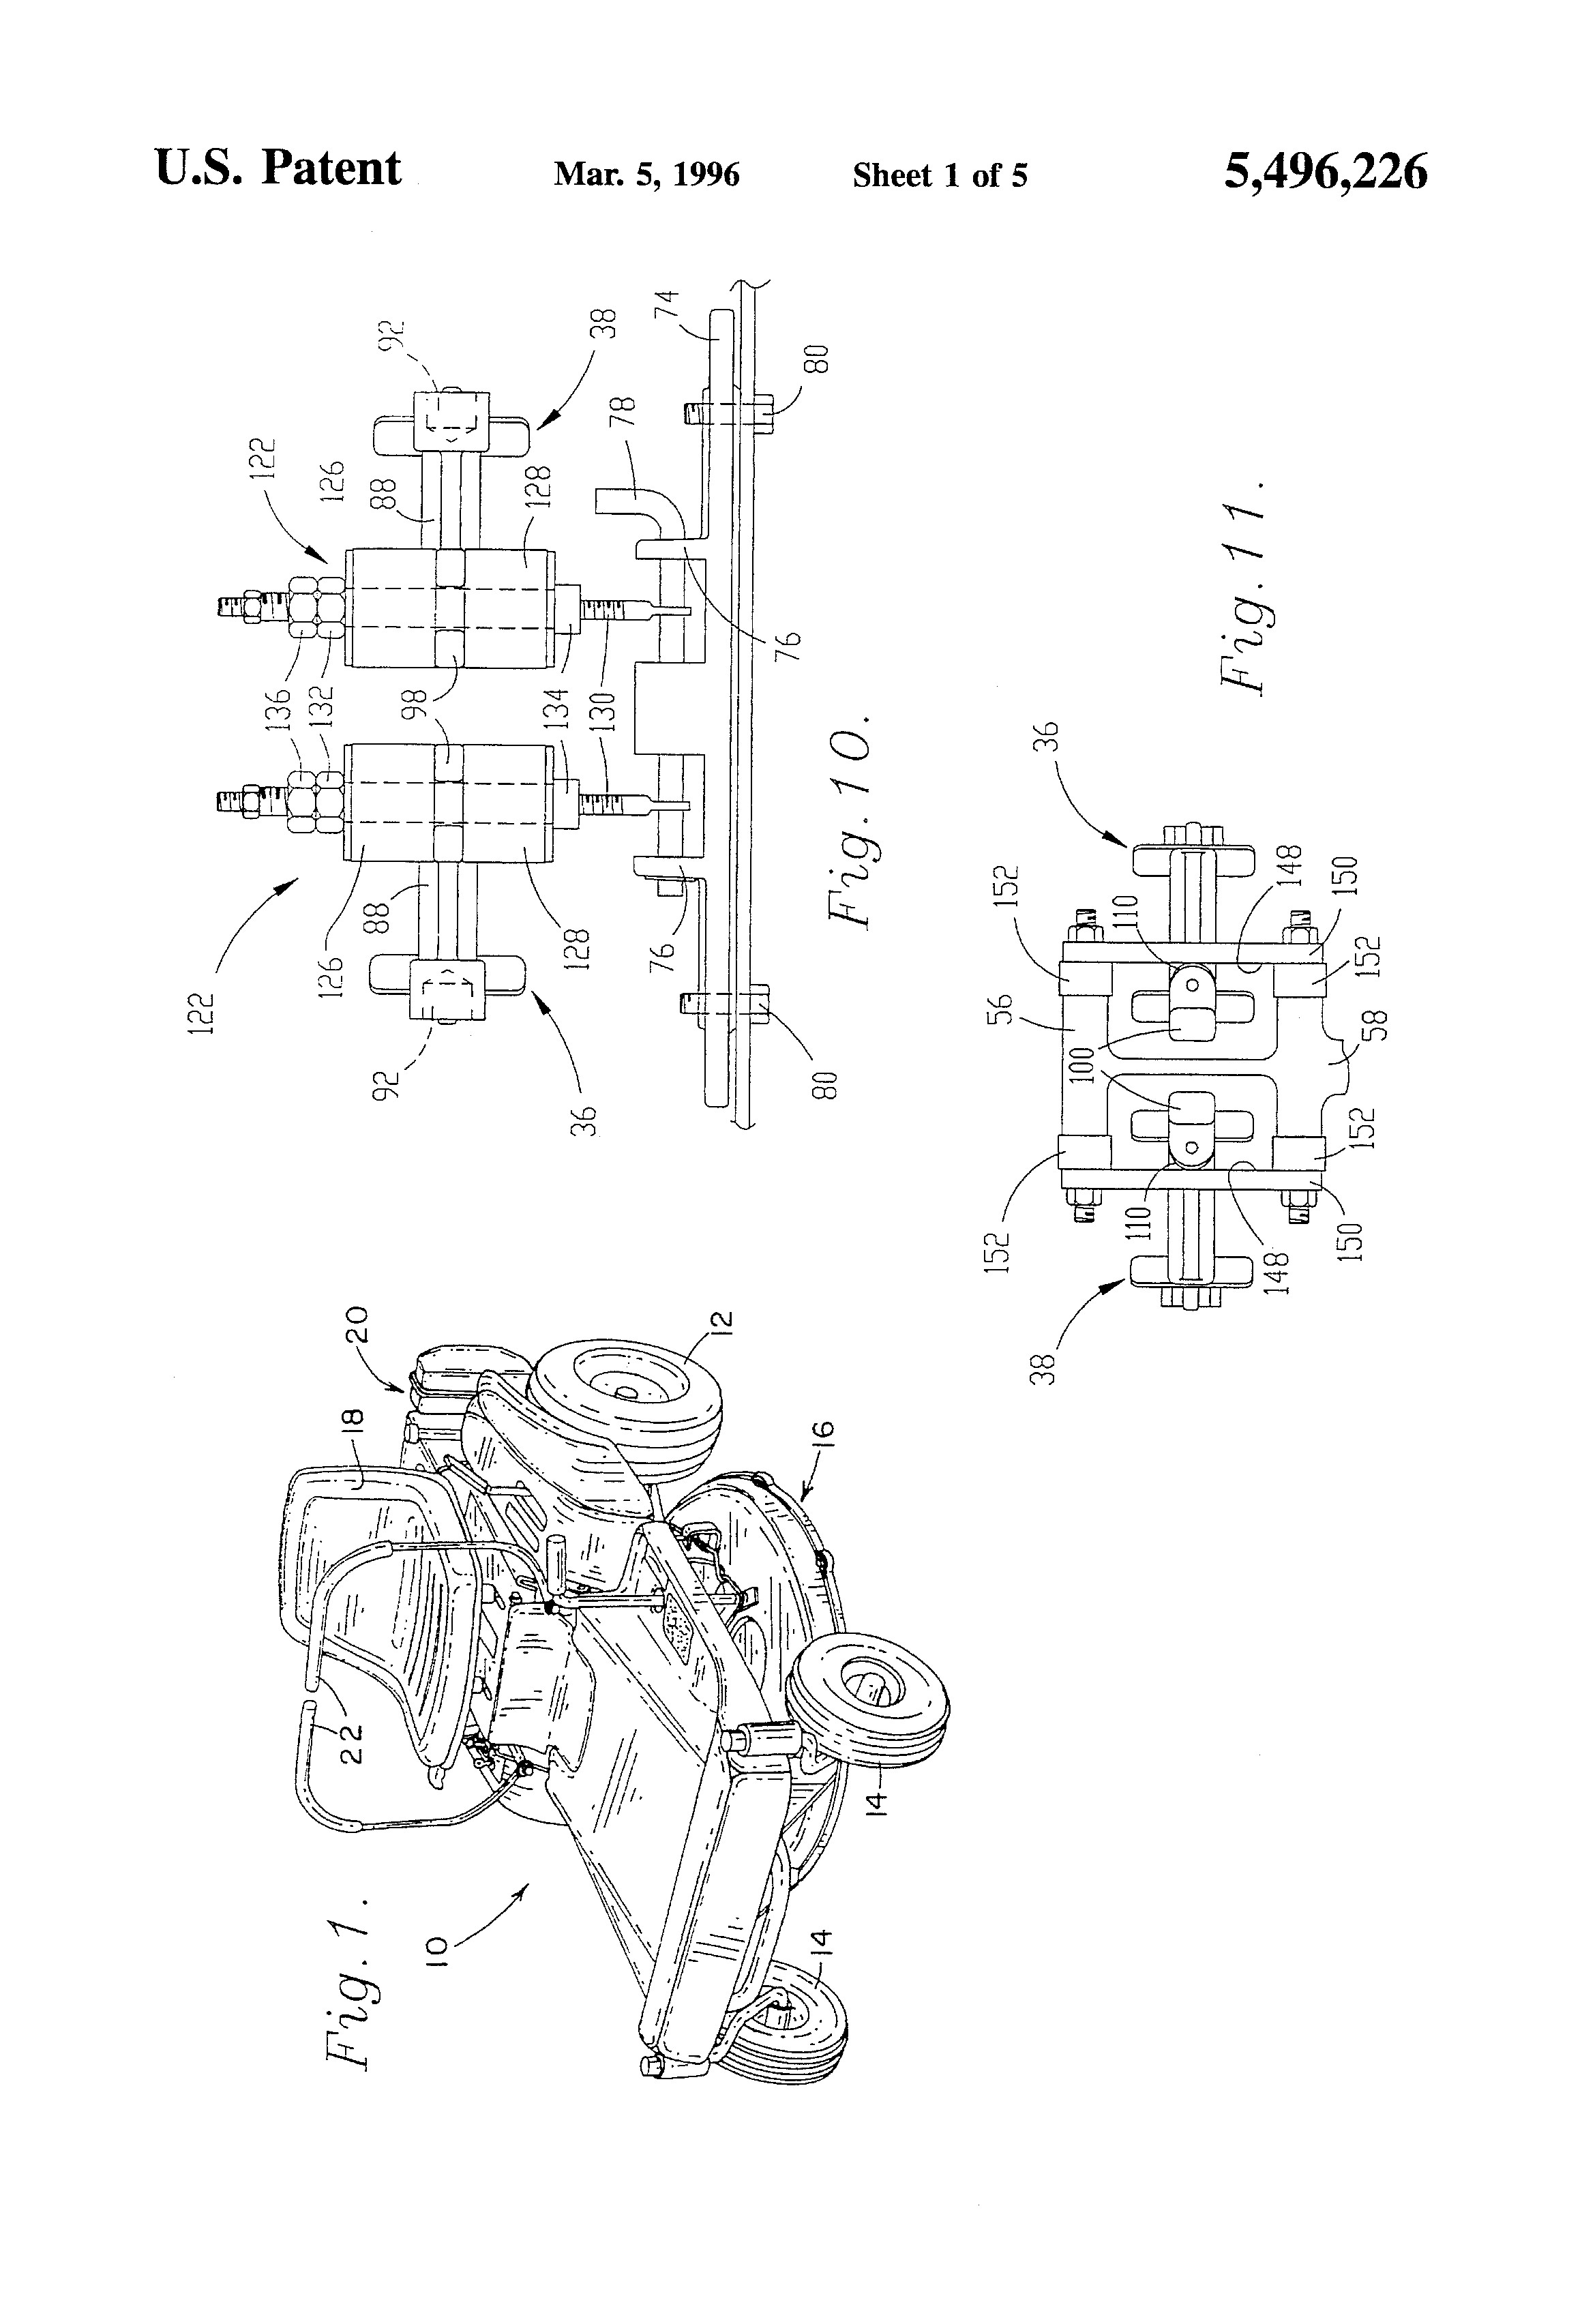 Dixon Lawn Mower Parts Diagram Patent Us Friction Drive Unit for Riding Lawn Mowers and Of Dixon Lawn Mower Parts Diagram